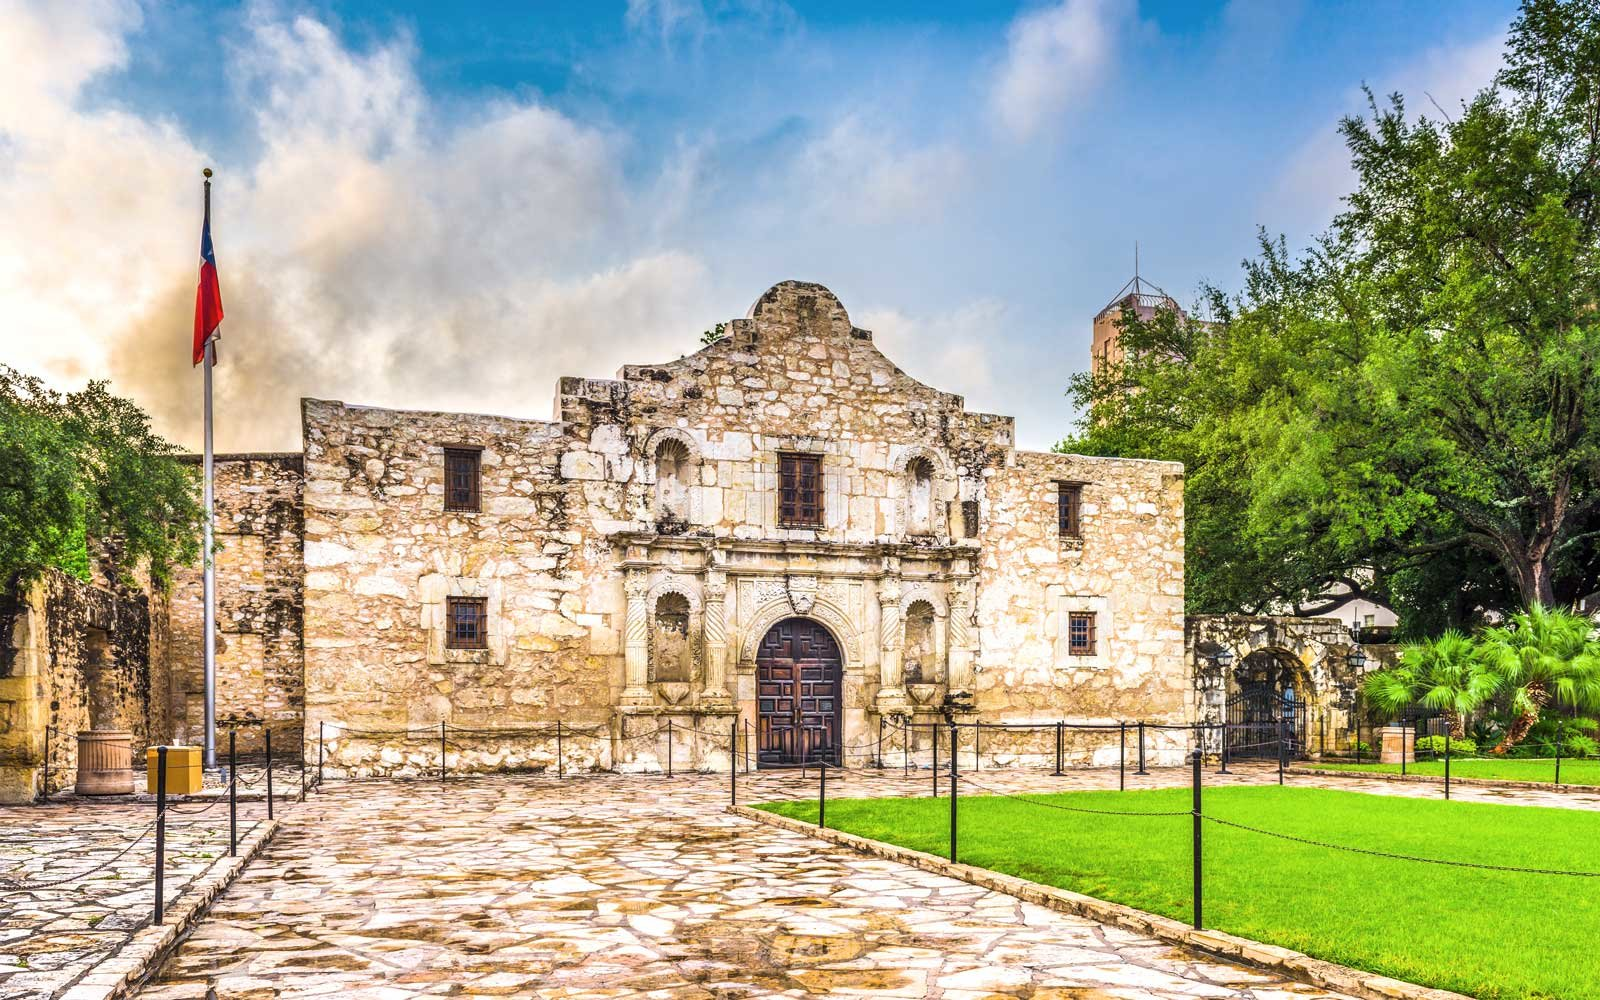 View the Next Eclipse from The Alamo